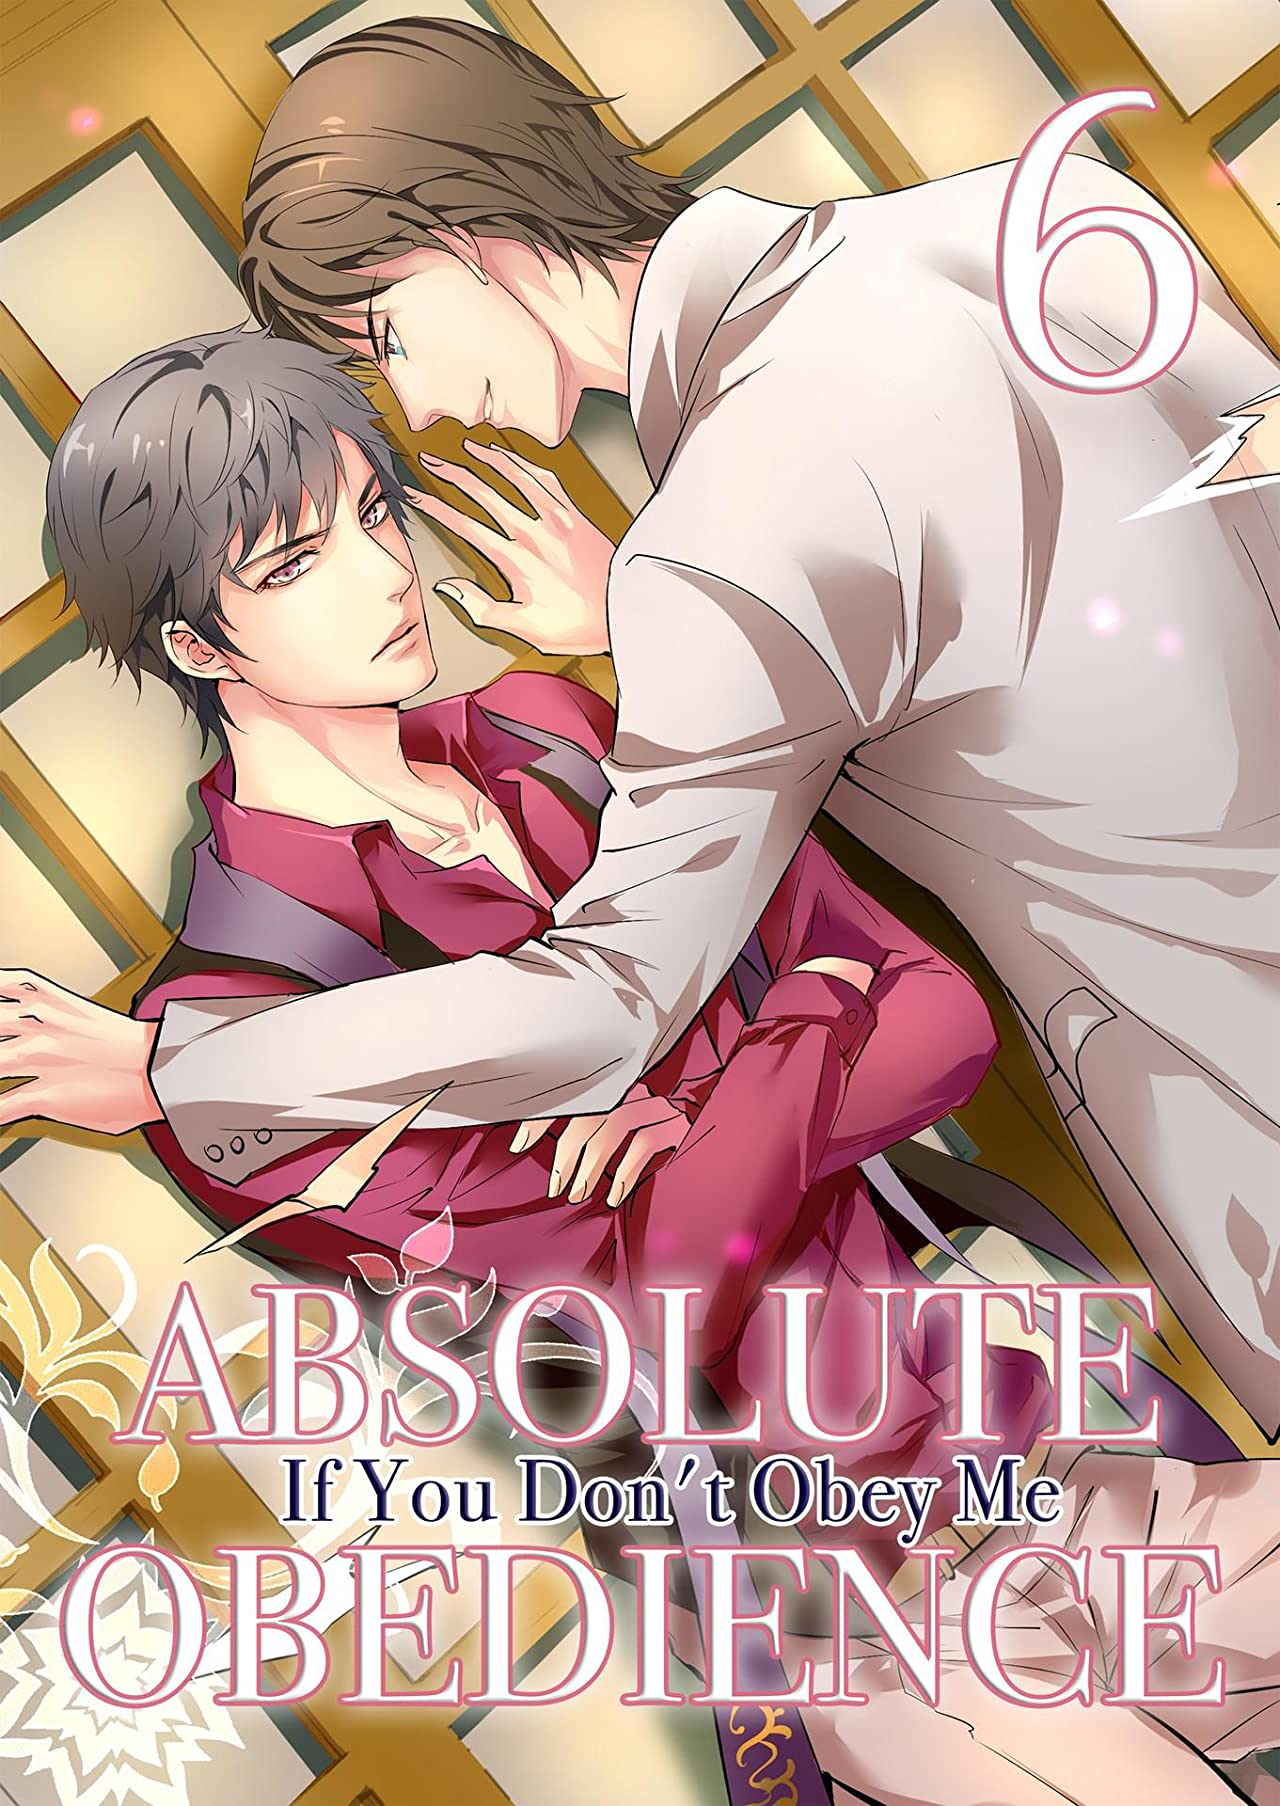 Absolute Obedience ~If you don't obey me~ (Yaoi Manga) Vol. 6